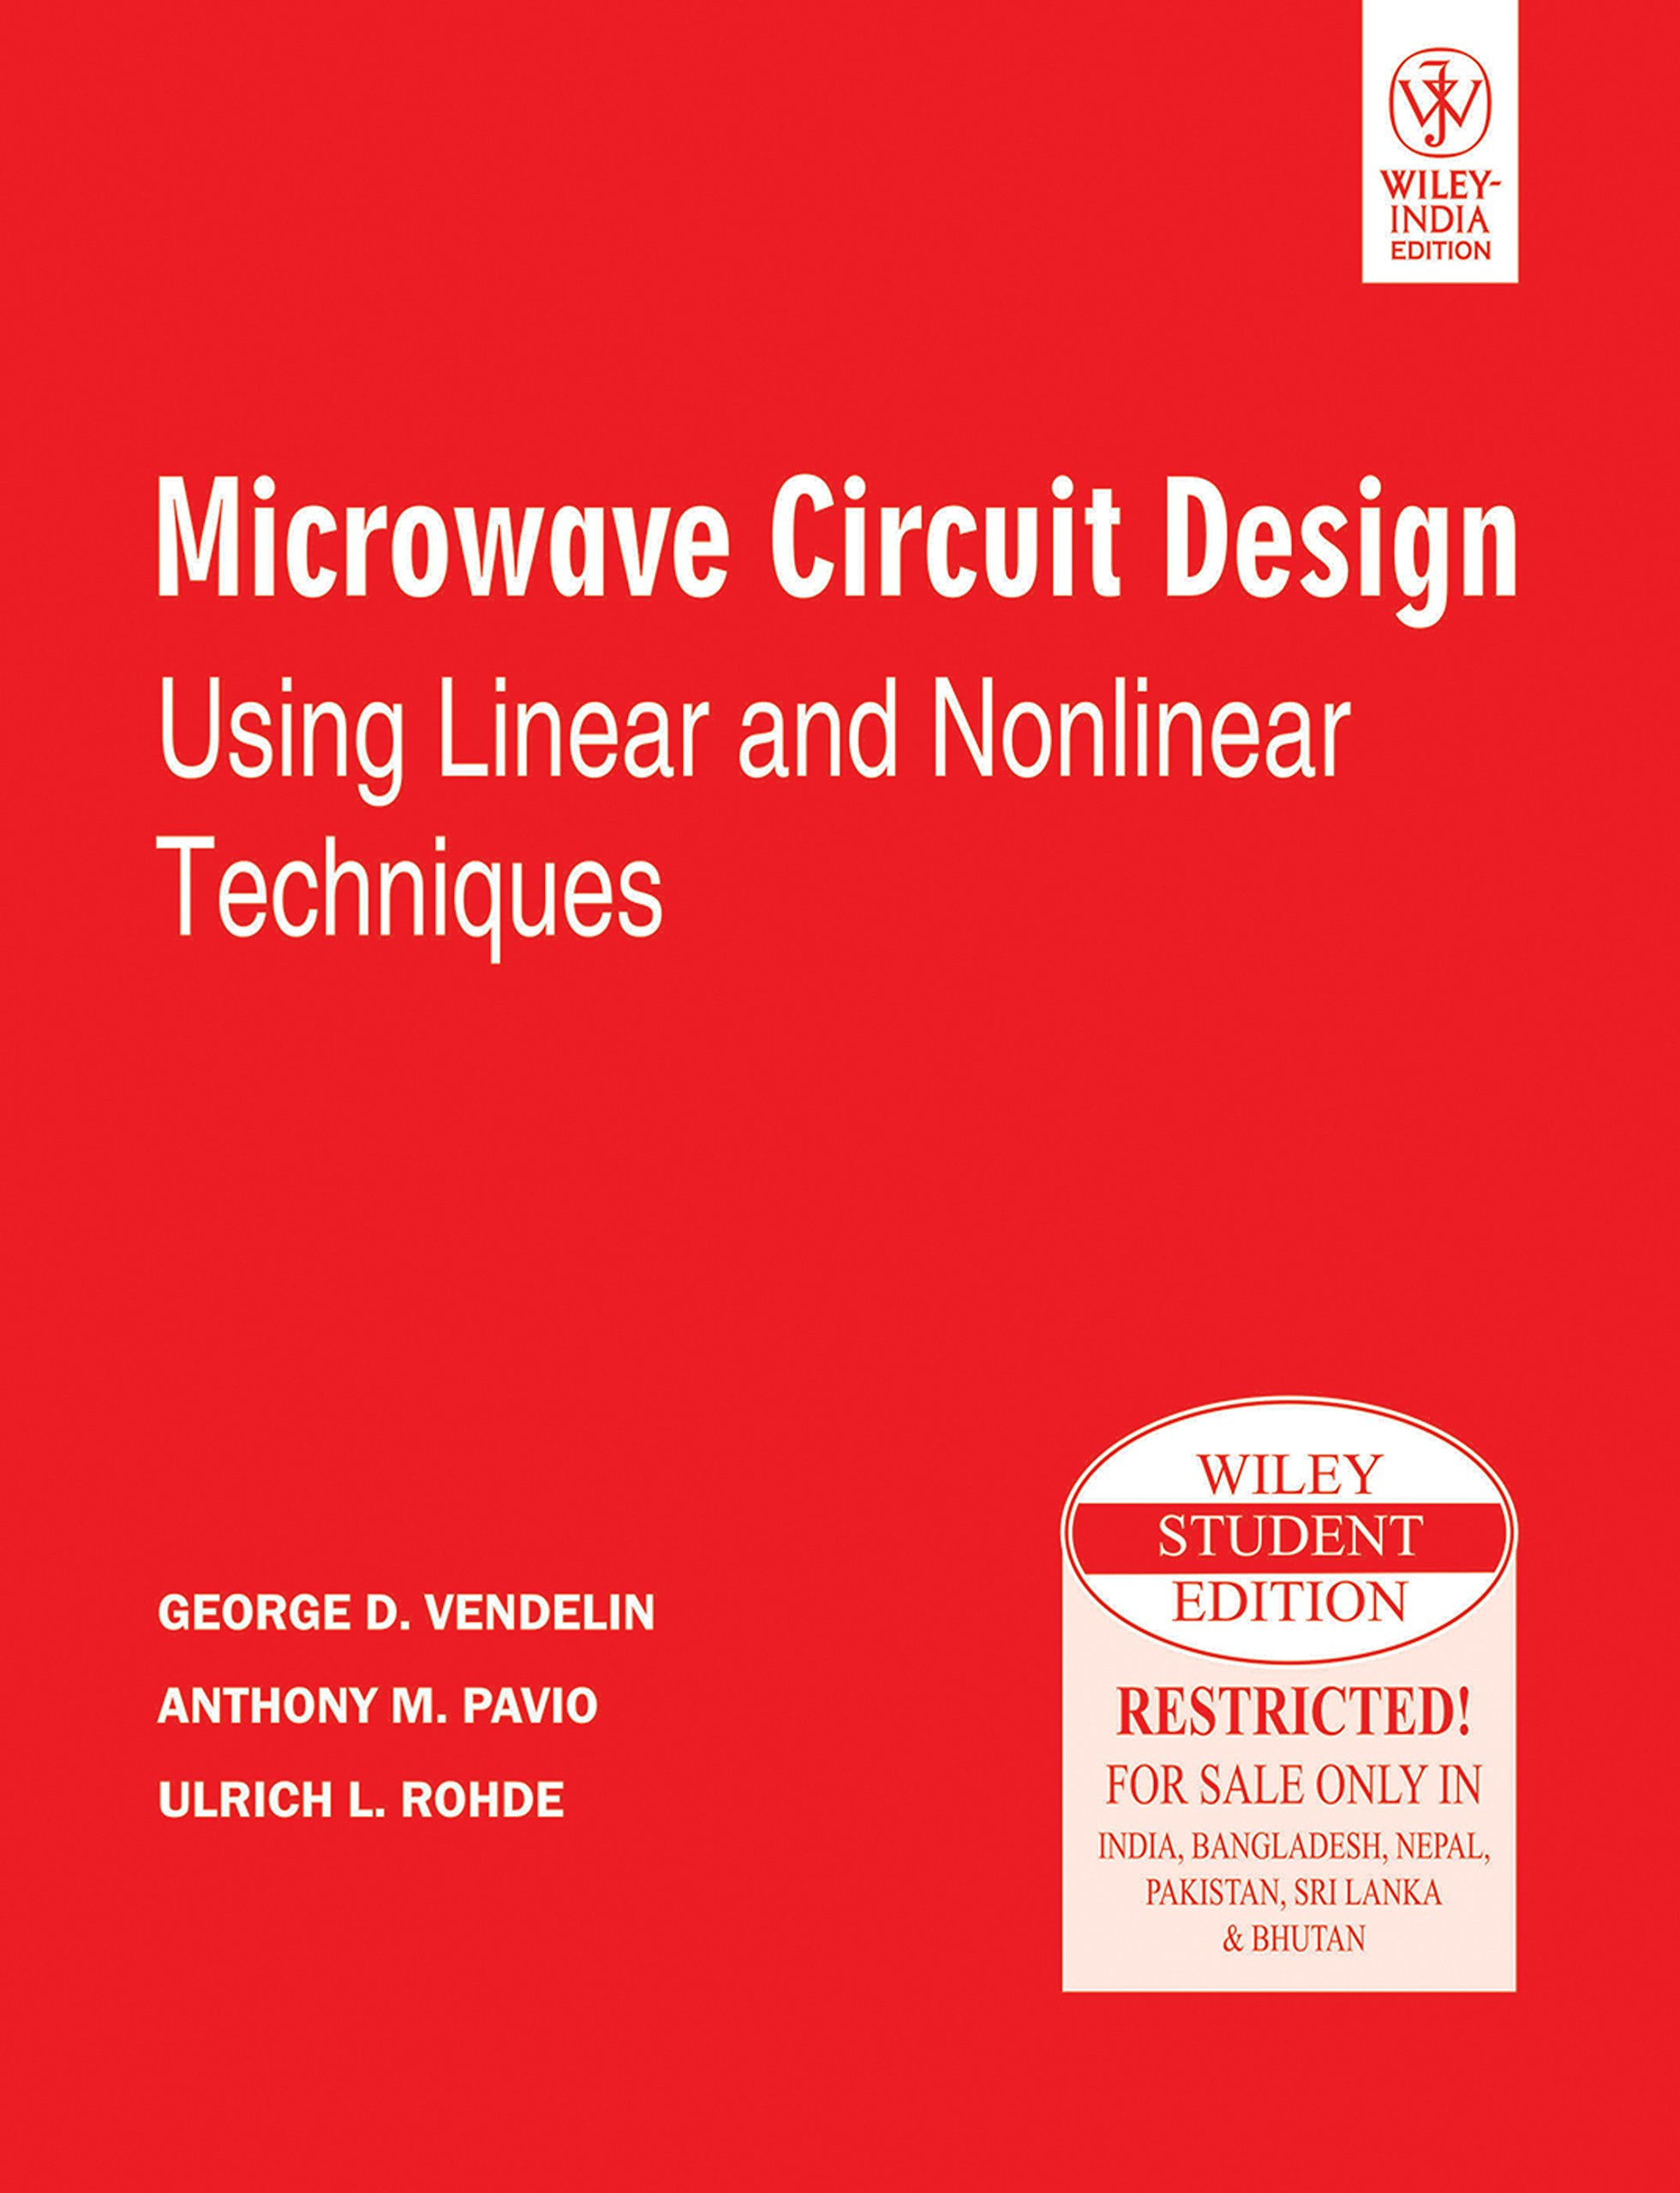 Microwave Circuit Design Using Linear And Nonlinear Techniques Monolithic Integrated Videos George D Pavio Anthony M Et Al Vendelin 9788126527885 Books